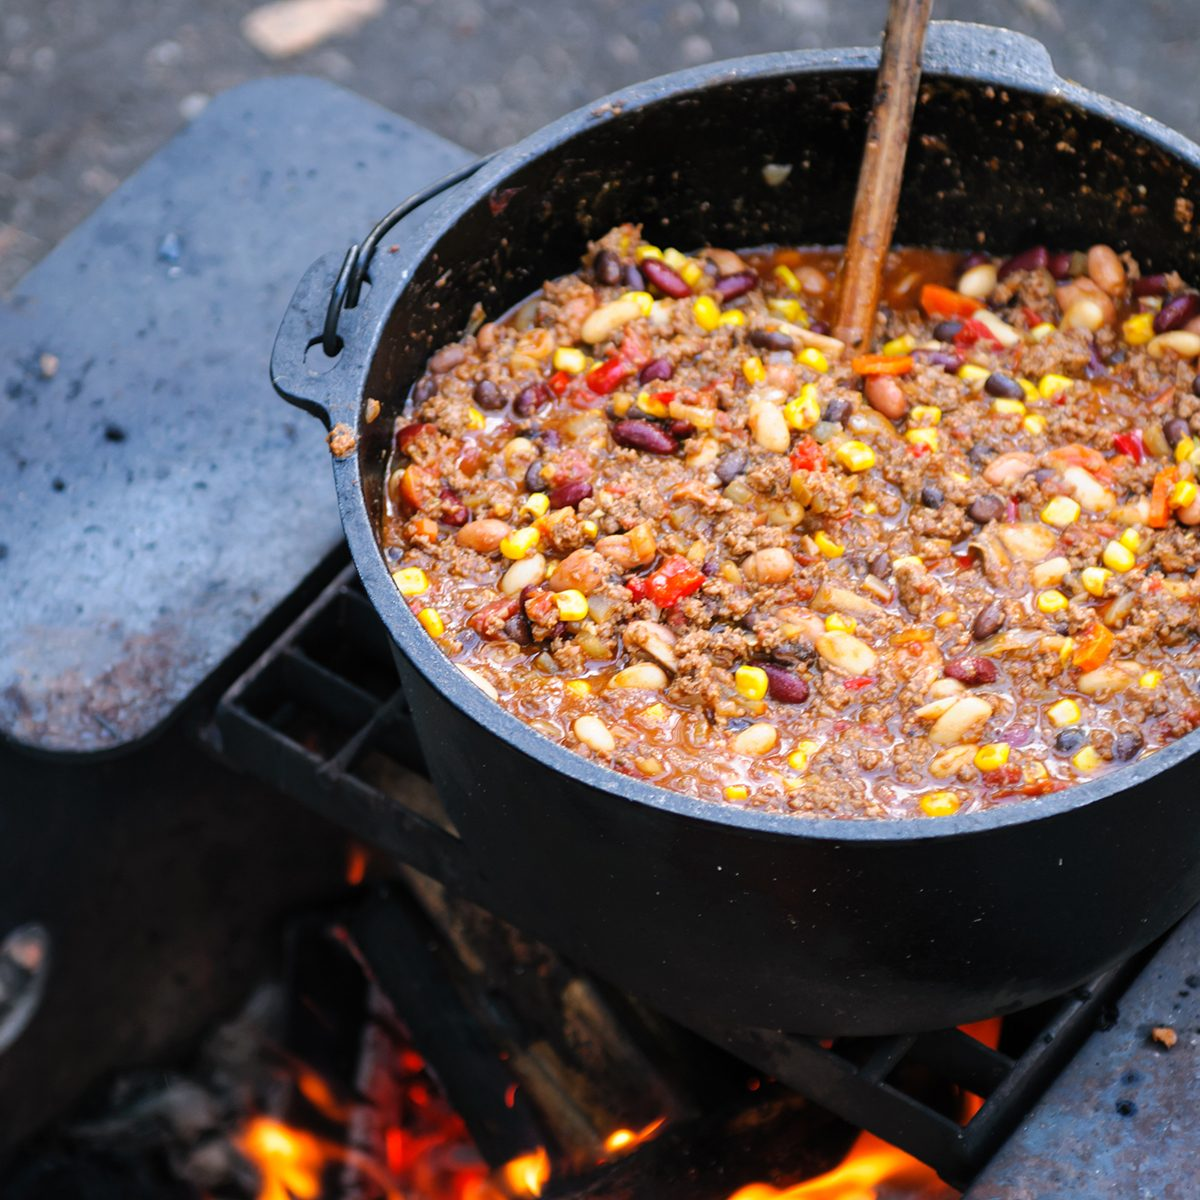 Large cast iron pot of spicy chili cooking over a campfire